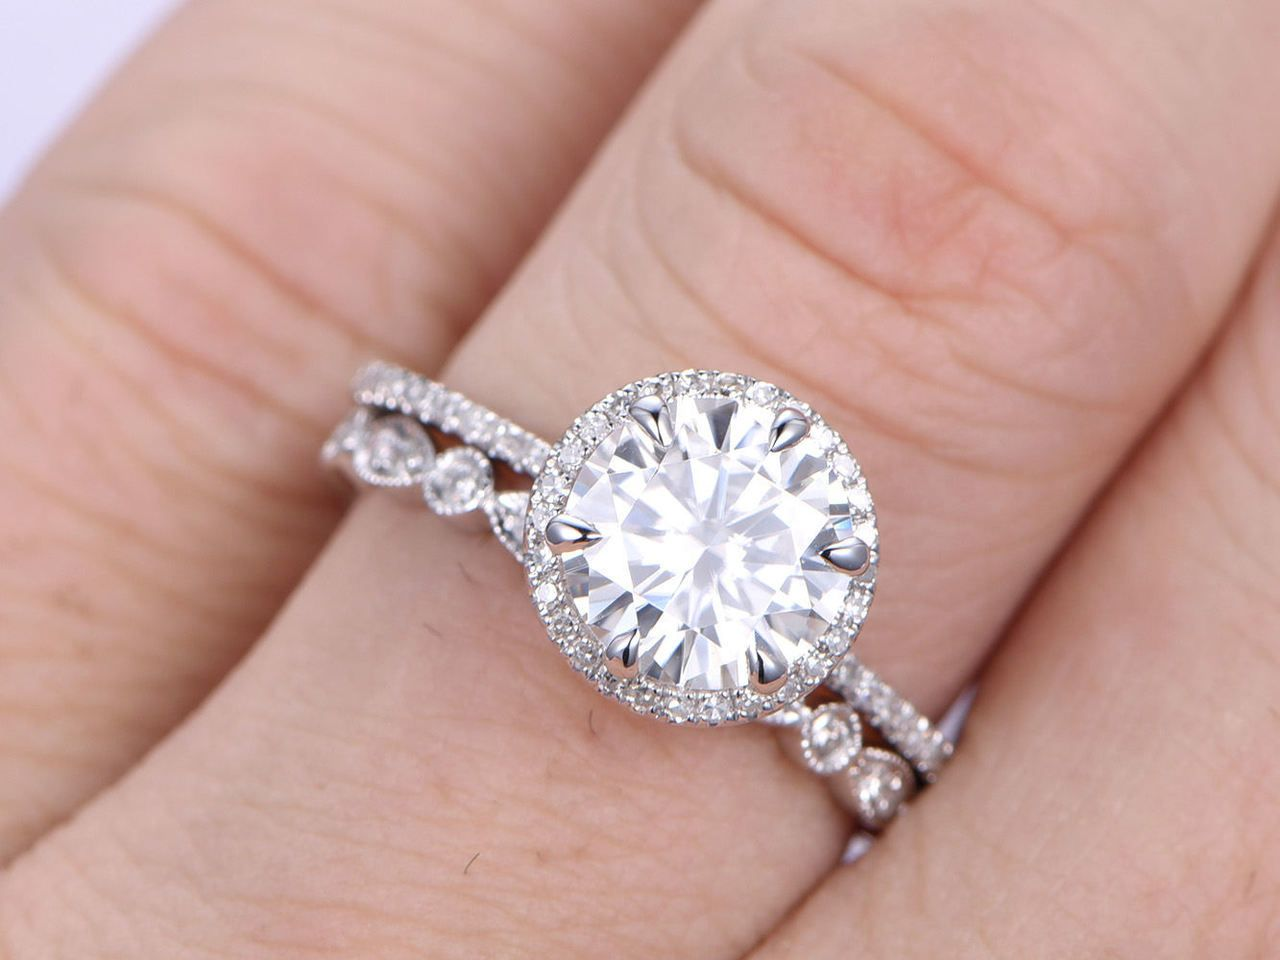 2pcs Wedding Rng Set,Big Moissanite Ring,8mm Round Cut Moissanite ...